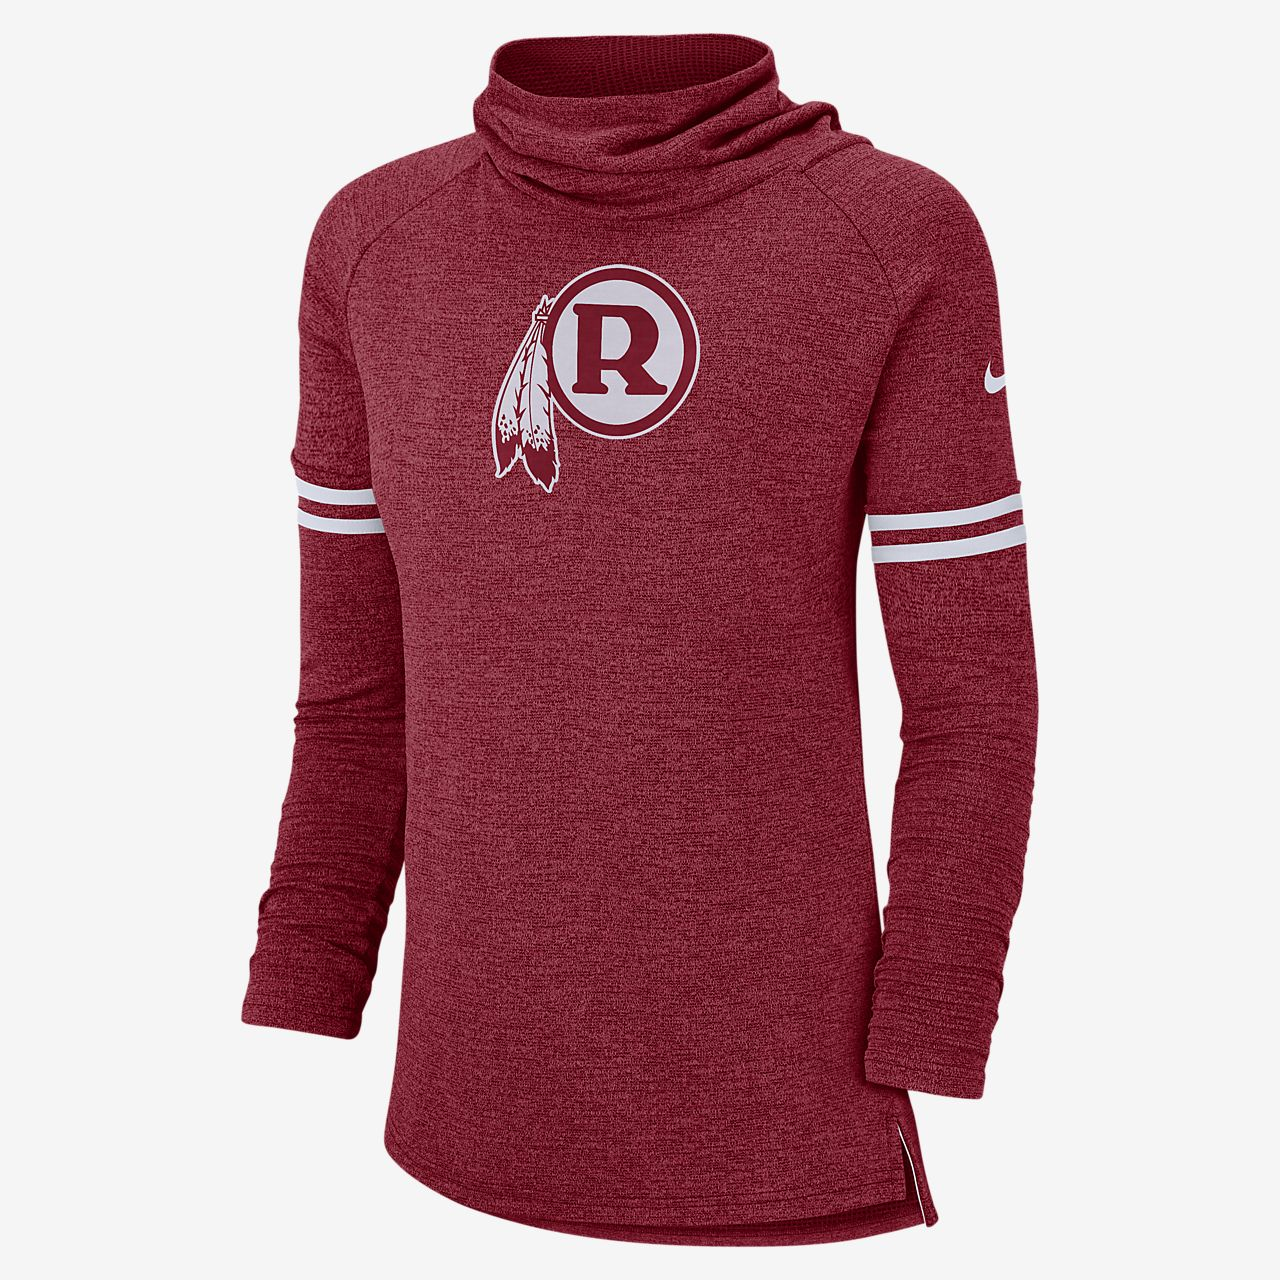 Nike (NFL Redskins) Women s Long Sleeve Top. Nike.com e192f5d7c4